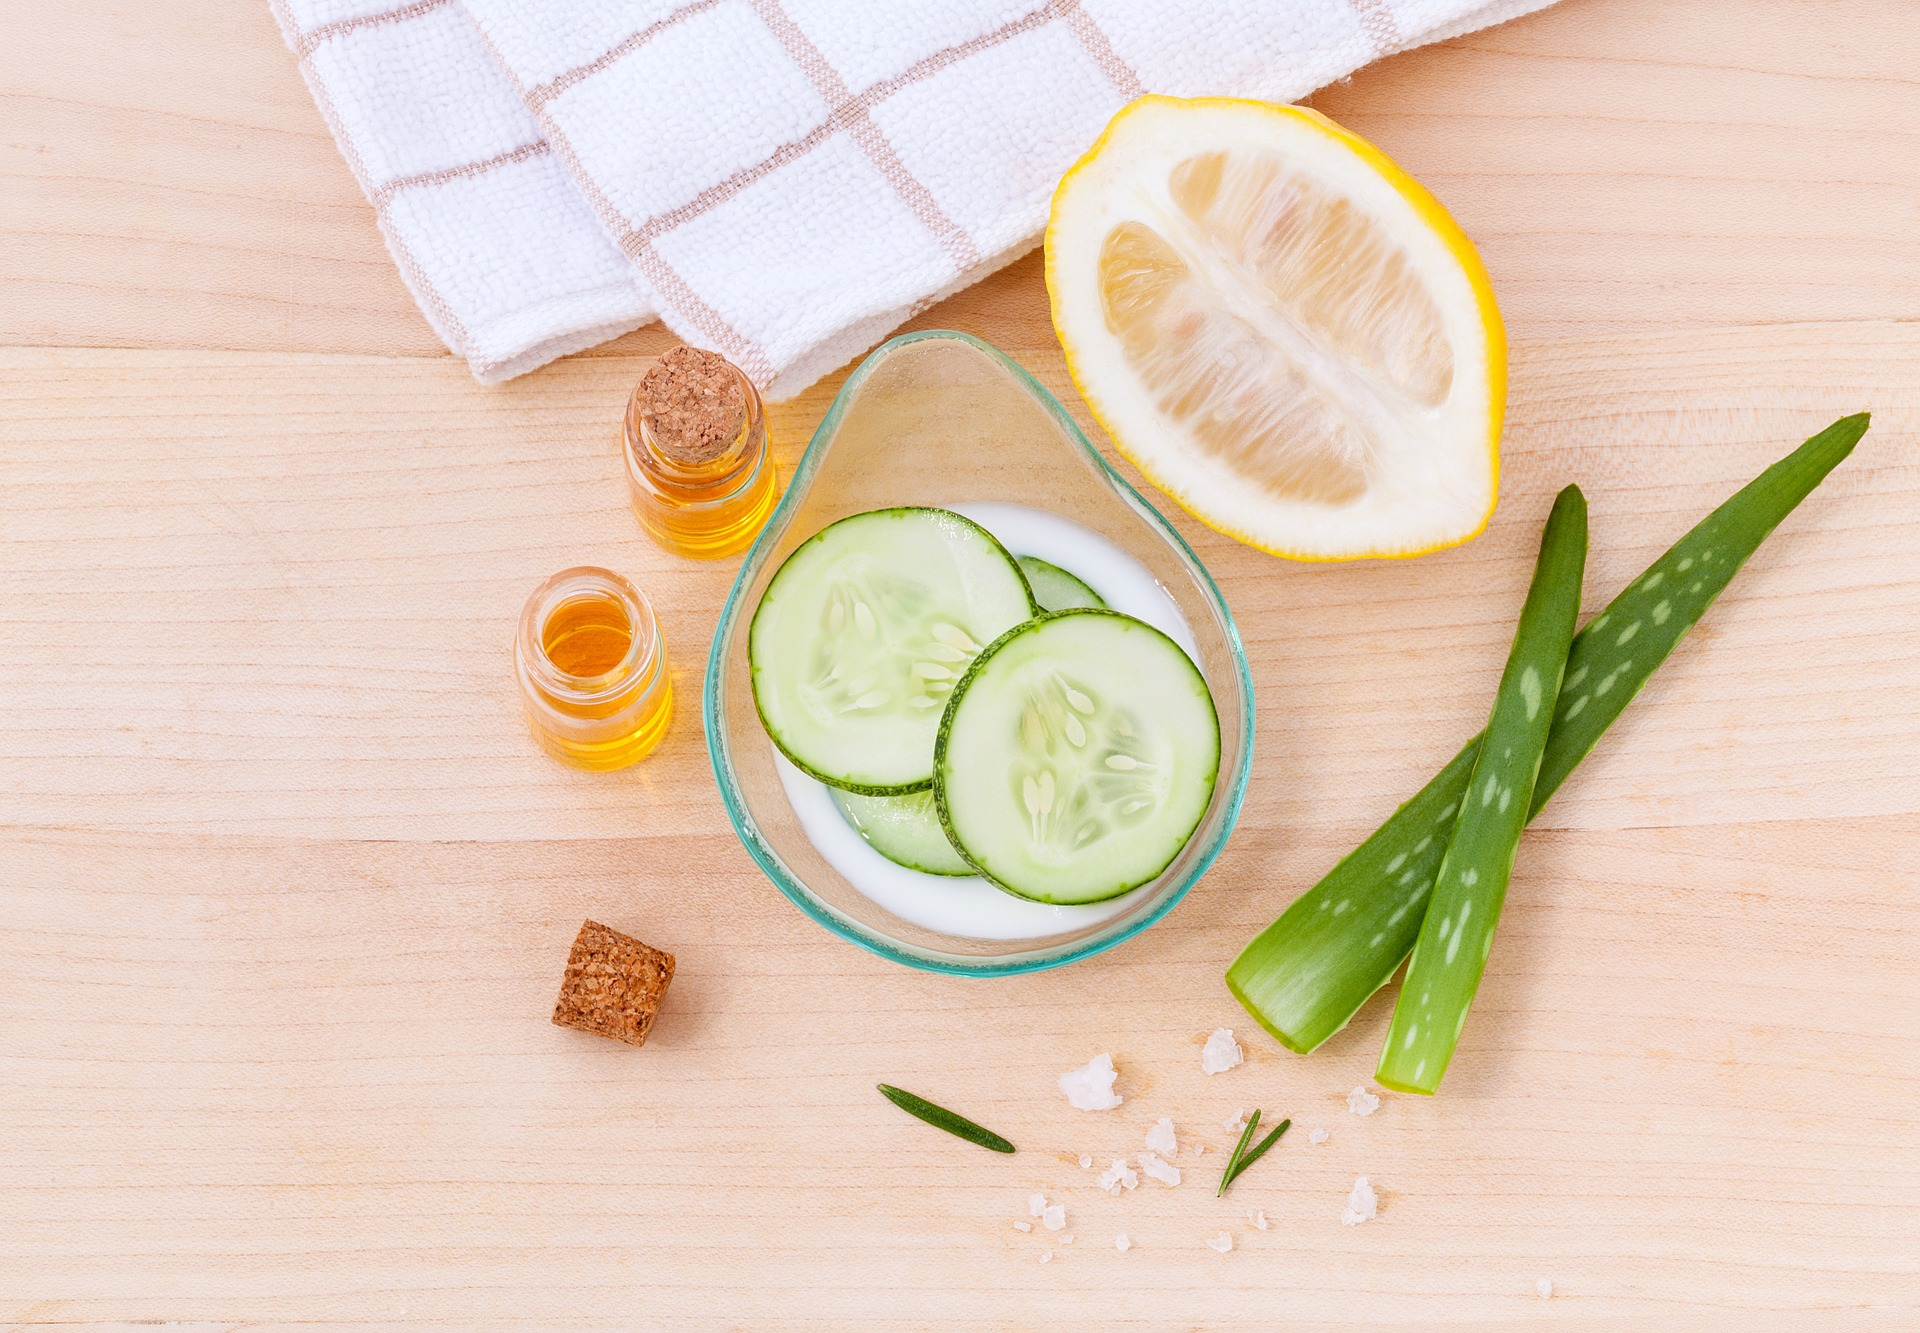 Cucumber, aloe vera, and lemon on a table with a towel